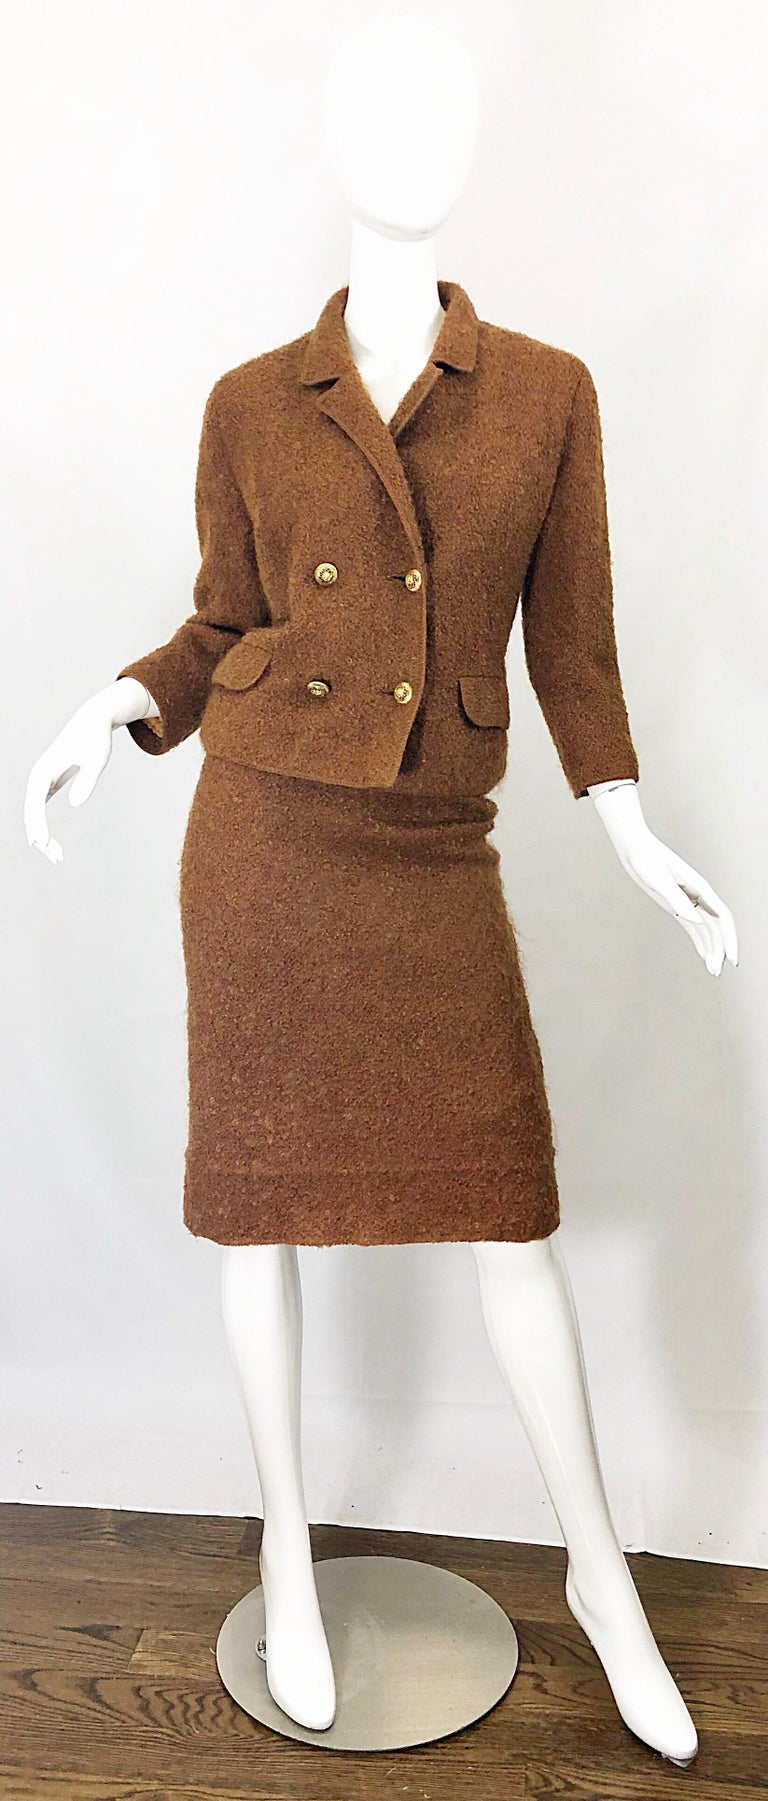 1960s I Magnin Couture Mohair Tobacco Rust Brown Vintage 60s Skirt + Blazer Suit For Sale 11